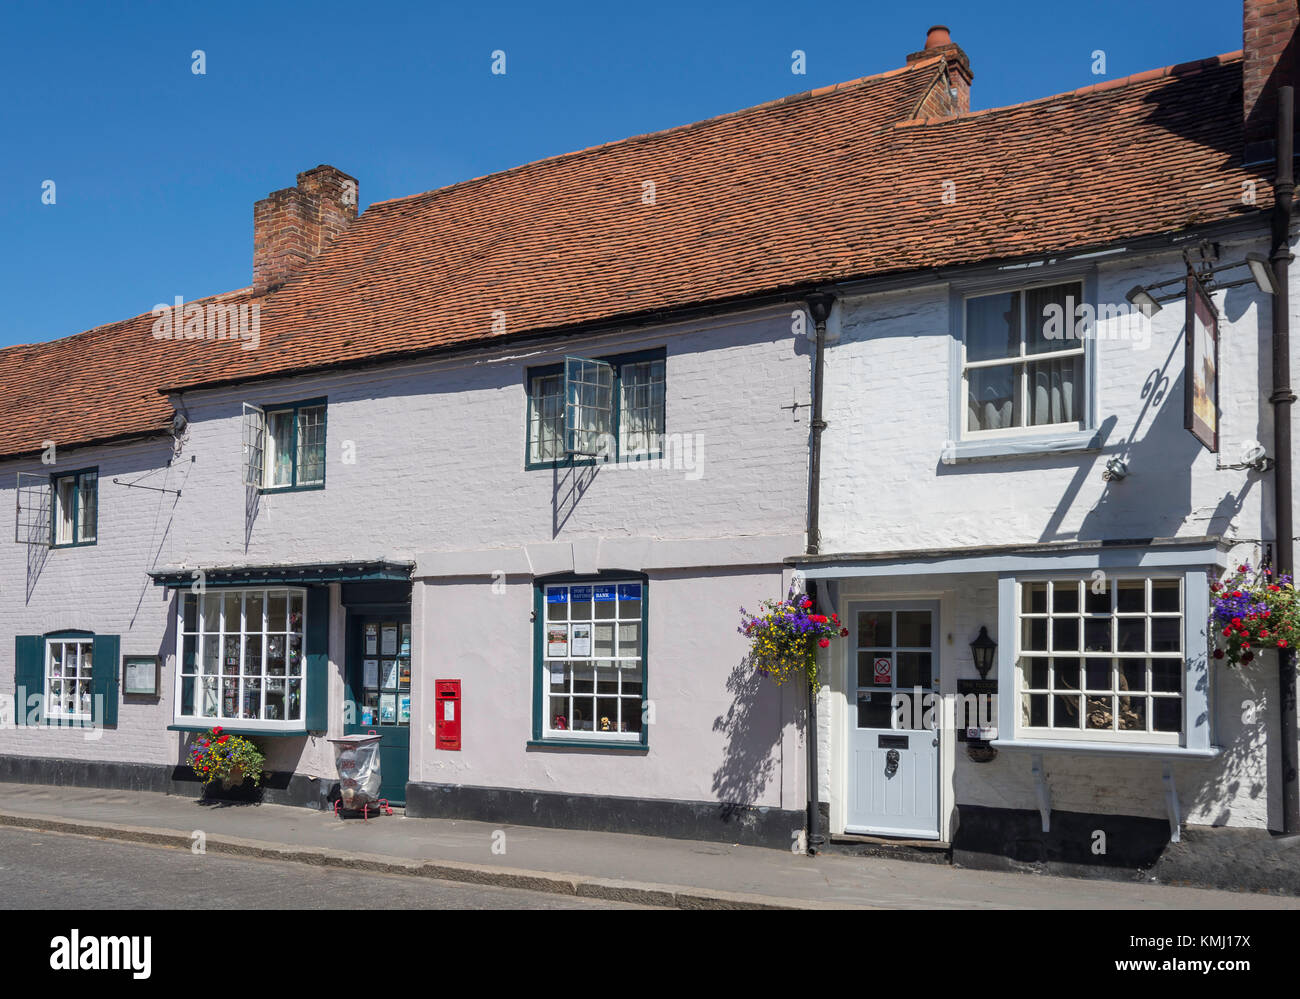 The Plough Inn, High Street, West Wycombe, Buckinghamshire, England, United Kingdom - Stock Image